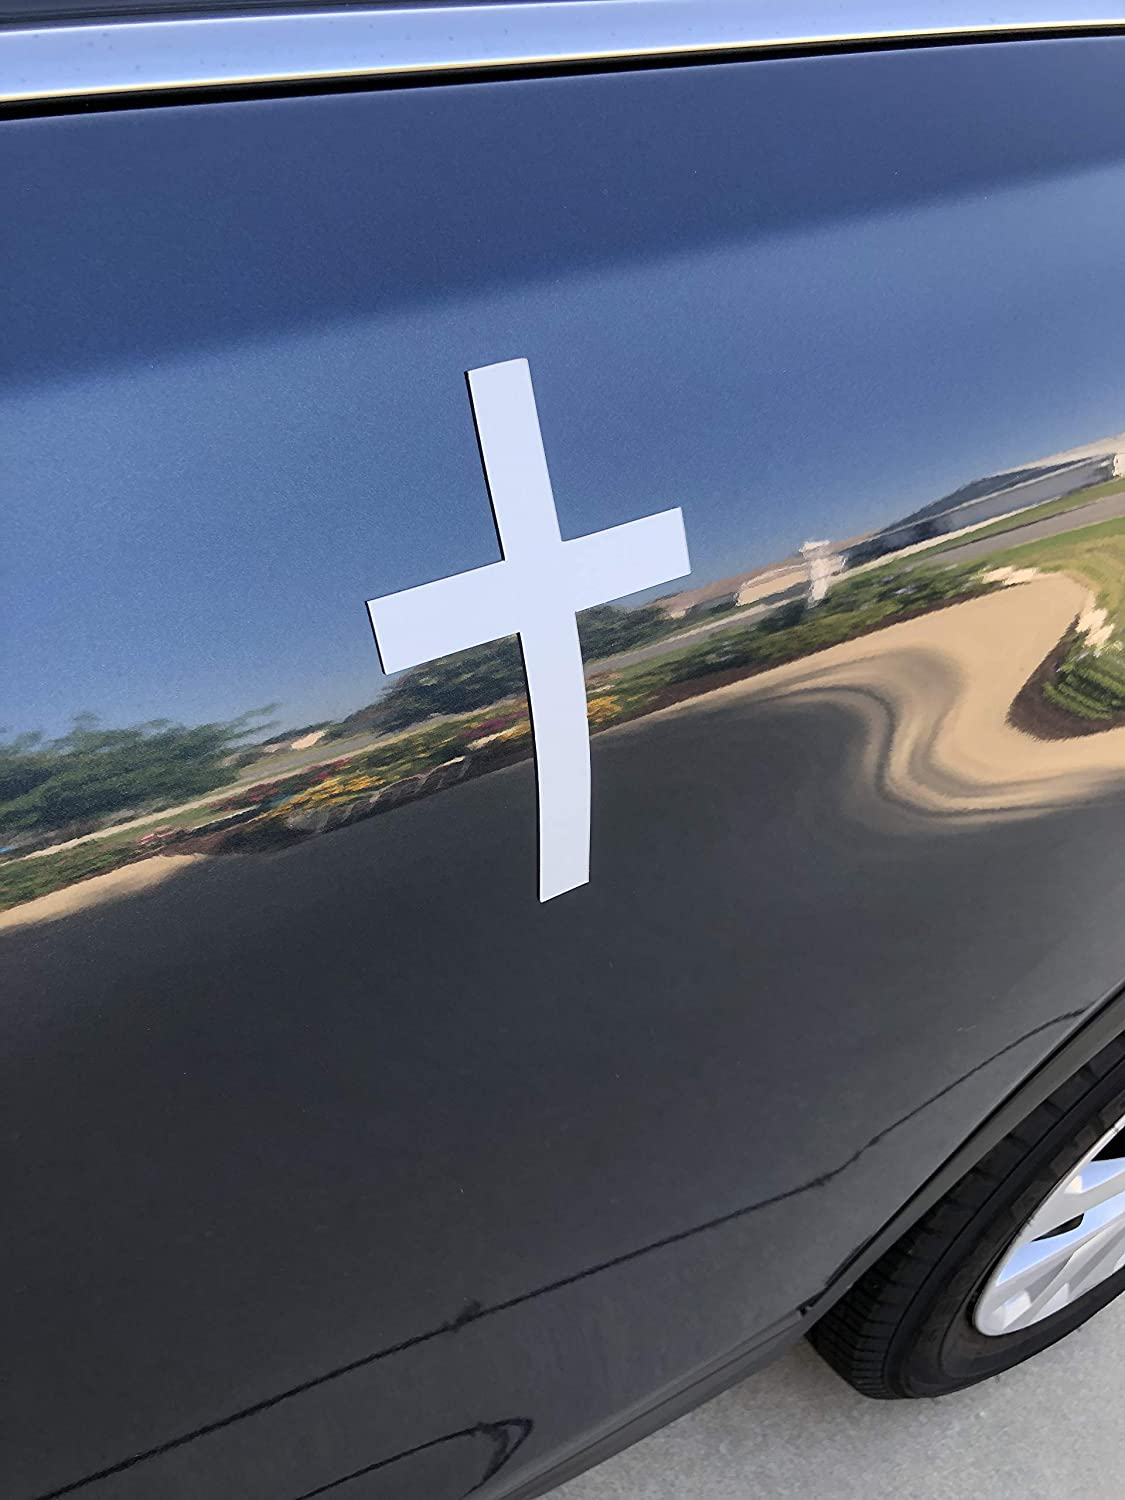 """Soft Car /& Truck Magnet Size 4/"""" x 6/"""" Magnetic Backed Vinyl Yet Very Sturdy DCentral Cross Solid Easily re-positioned."""